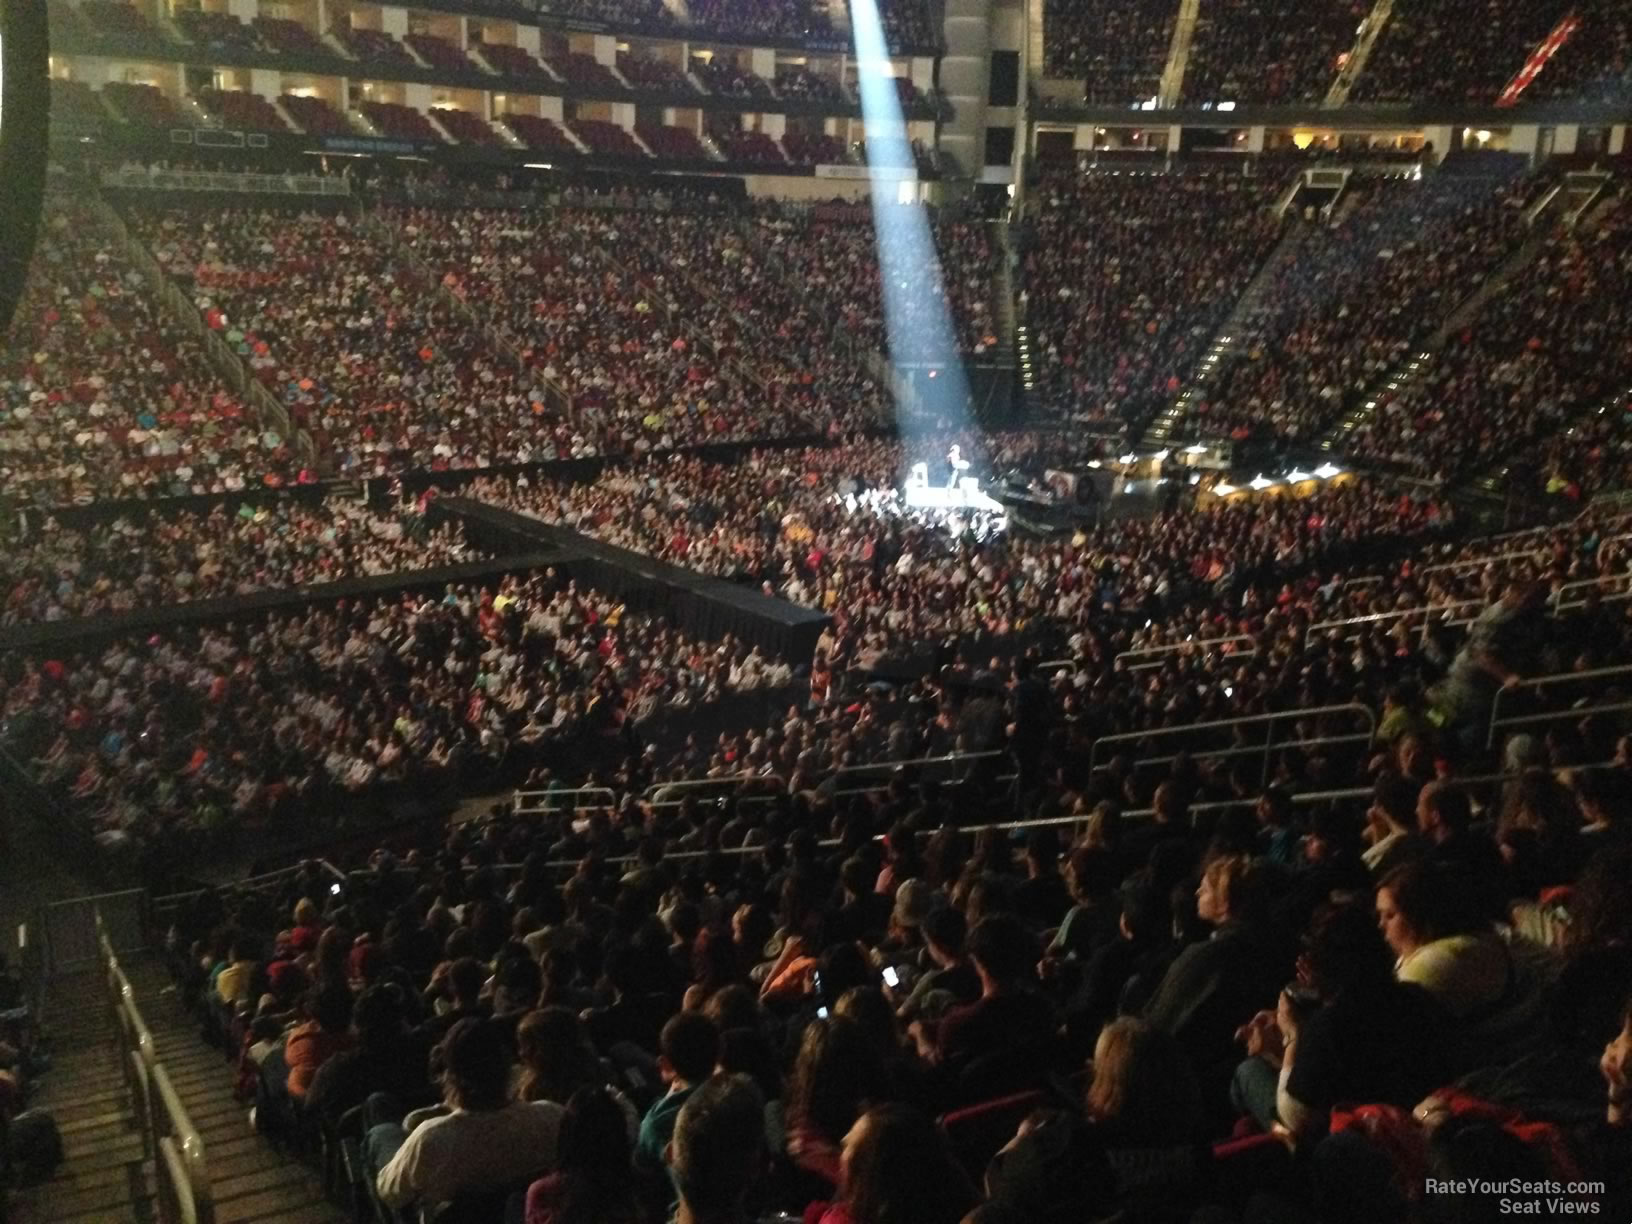 Toyota Center Section 123 Concert Seating Rateyourseats Com